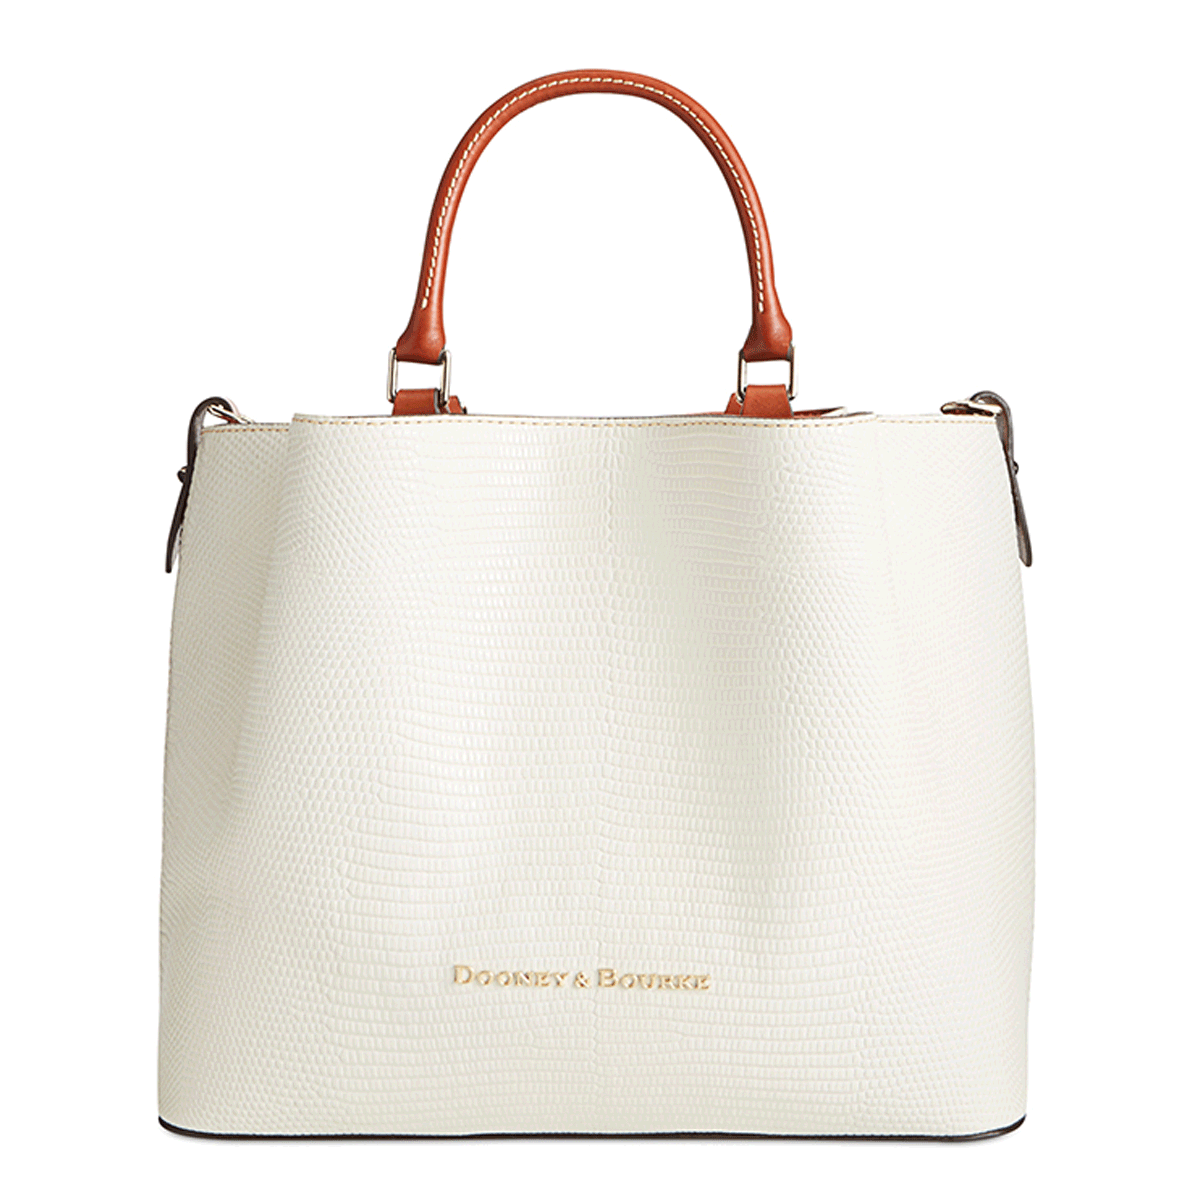 Find great deals on eBay for macys purses. Shop with confidence.